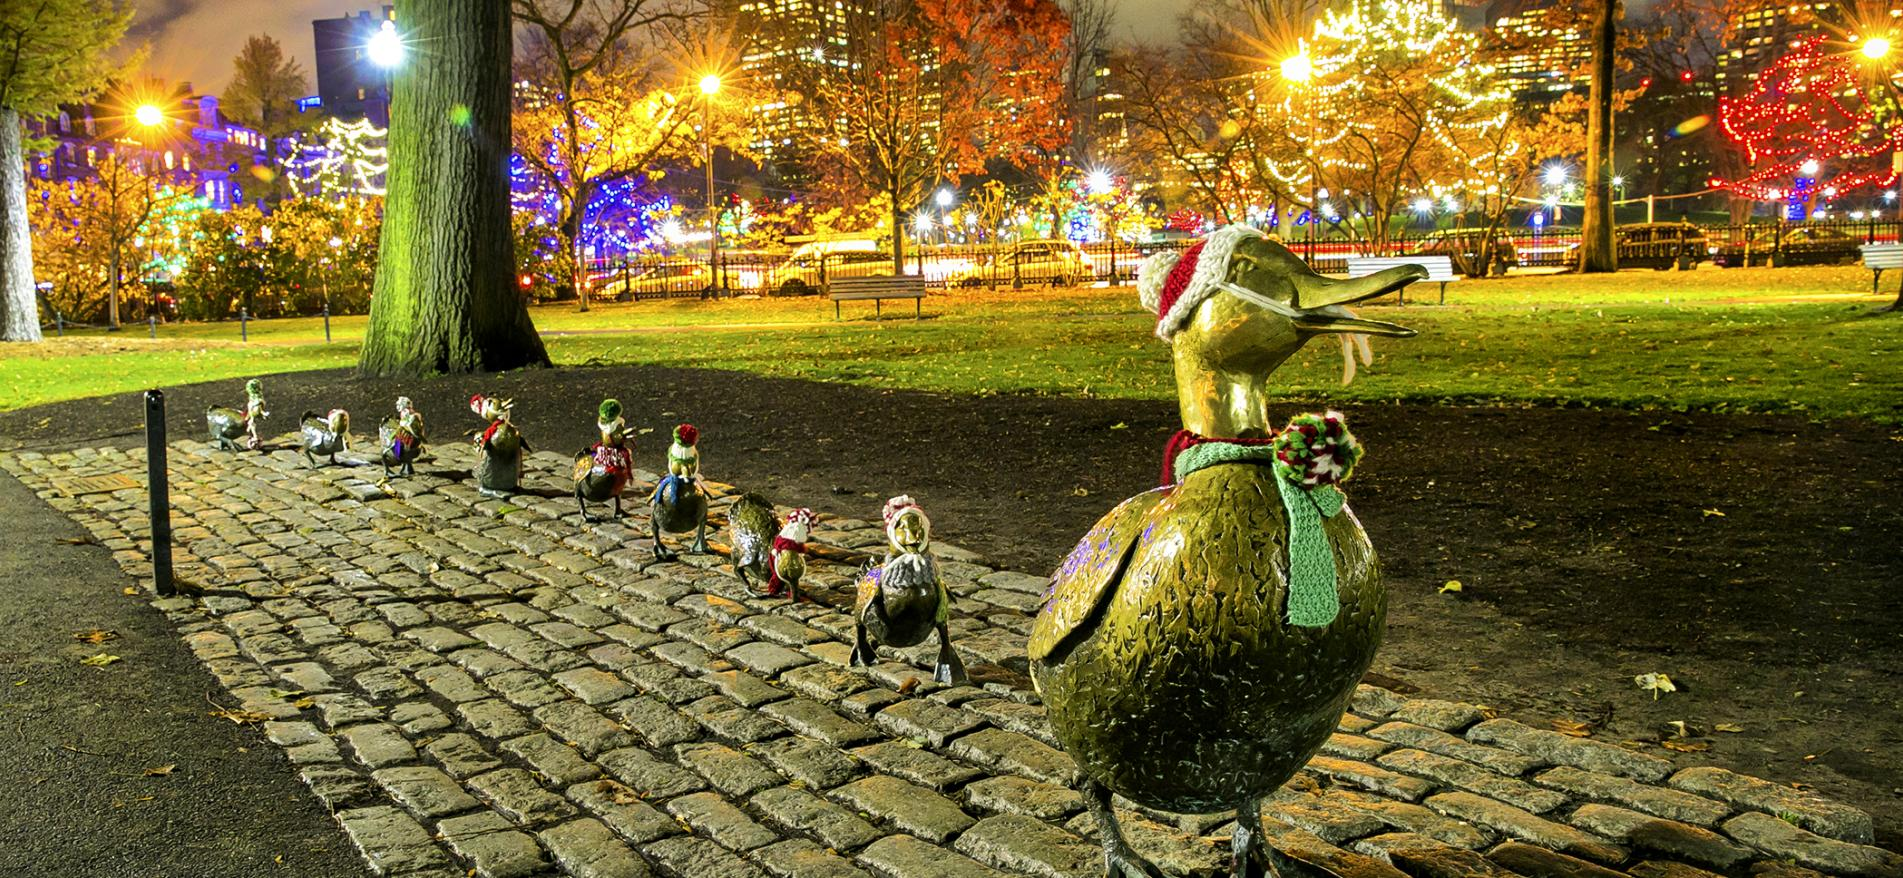 Christmas In Boston Images.Boston S Holiday Season Christmas And Nye Events